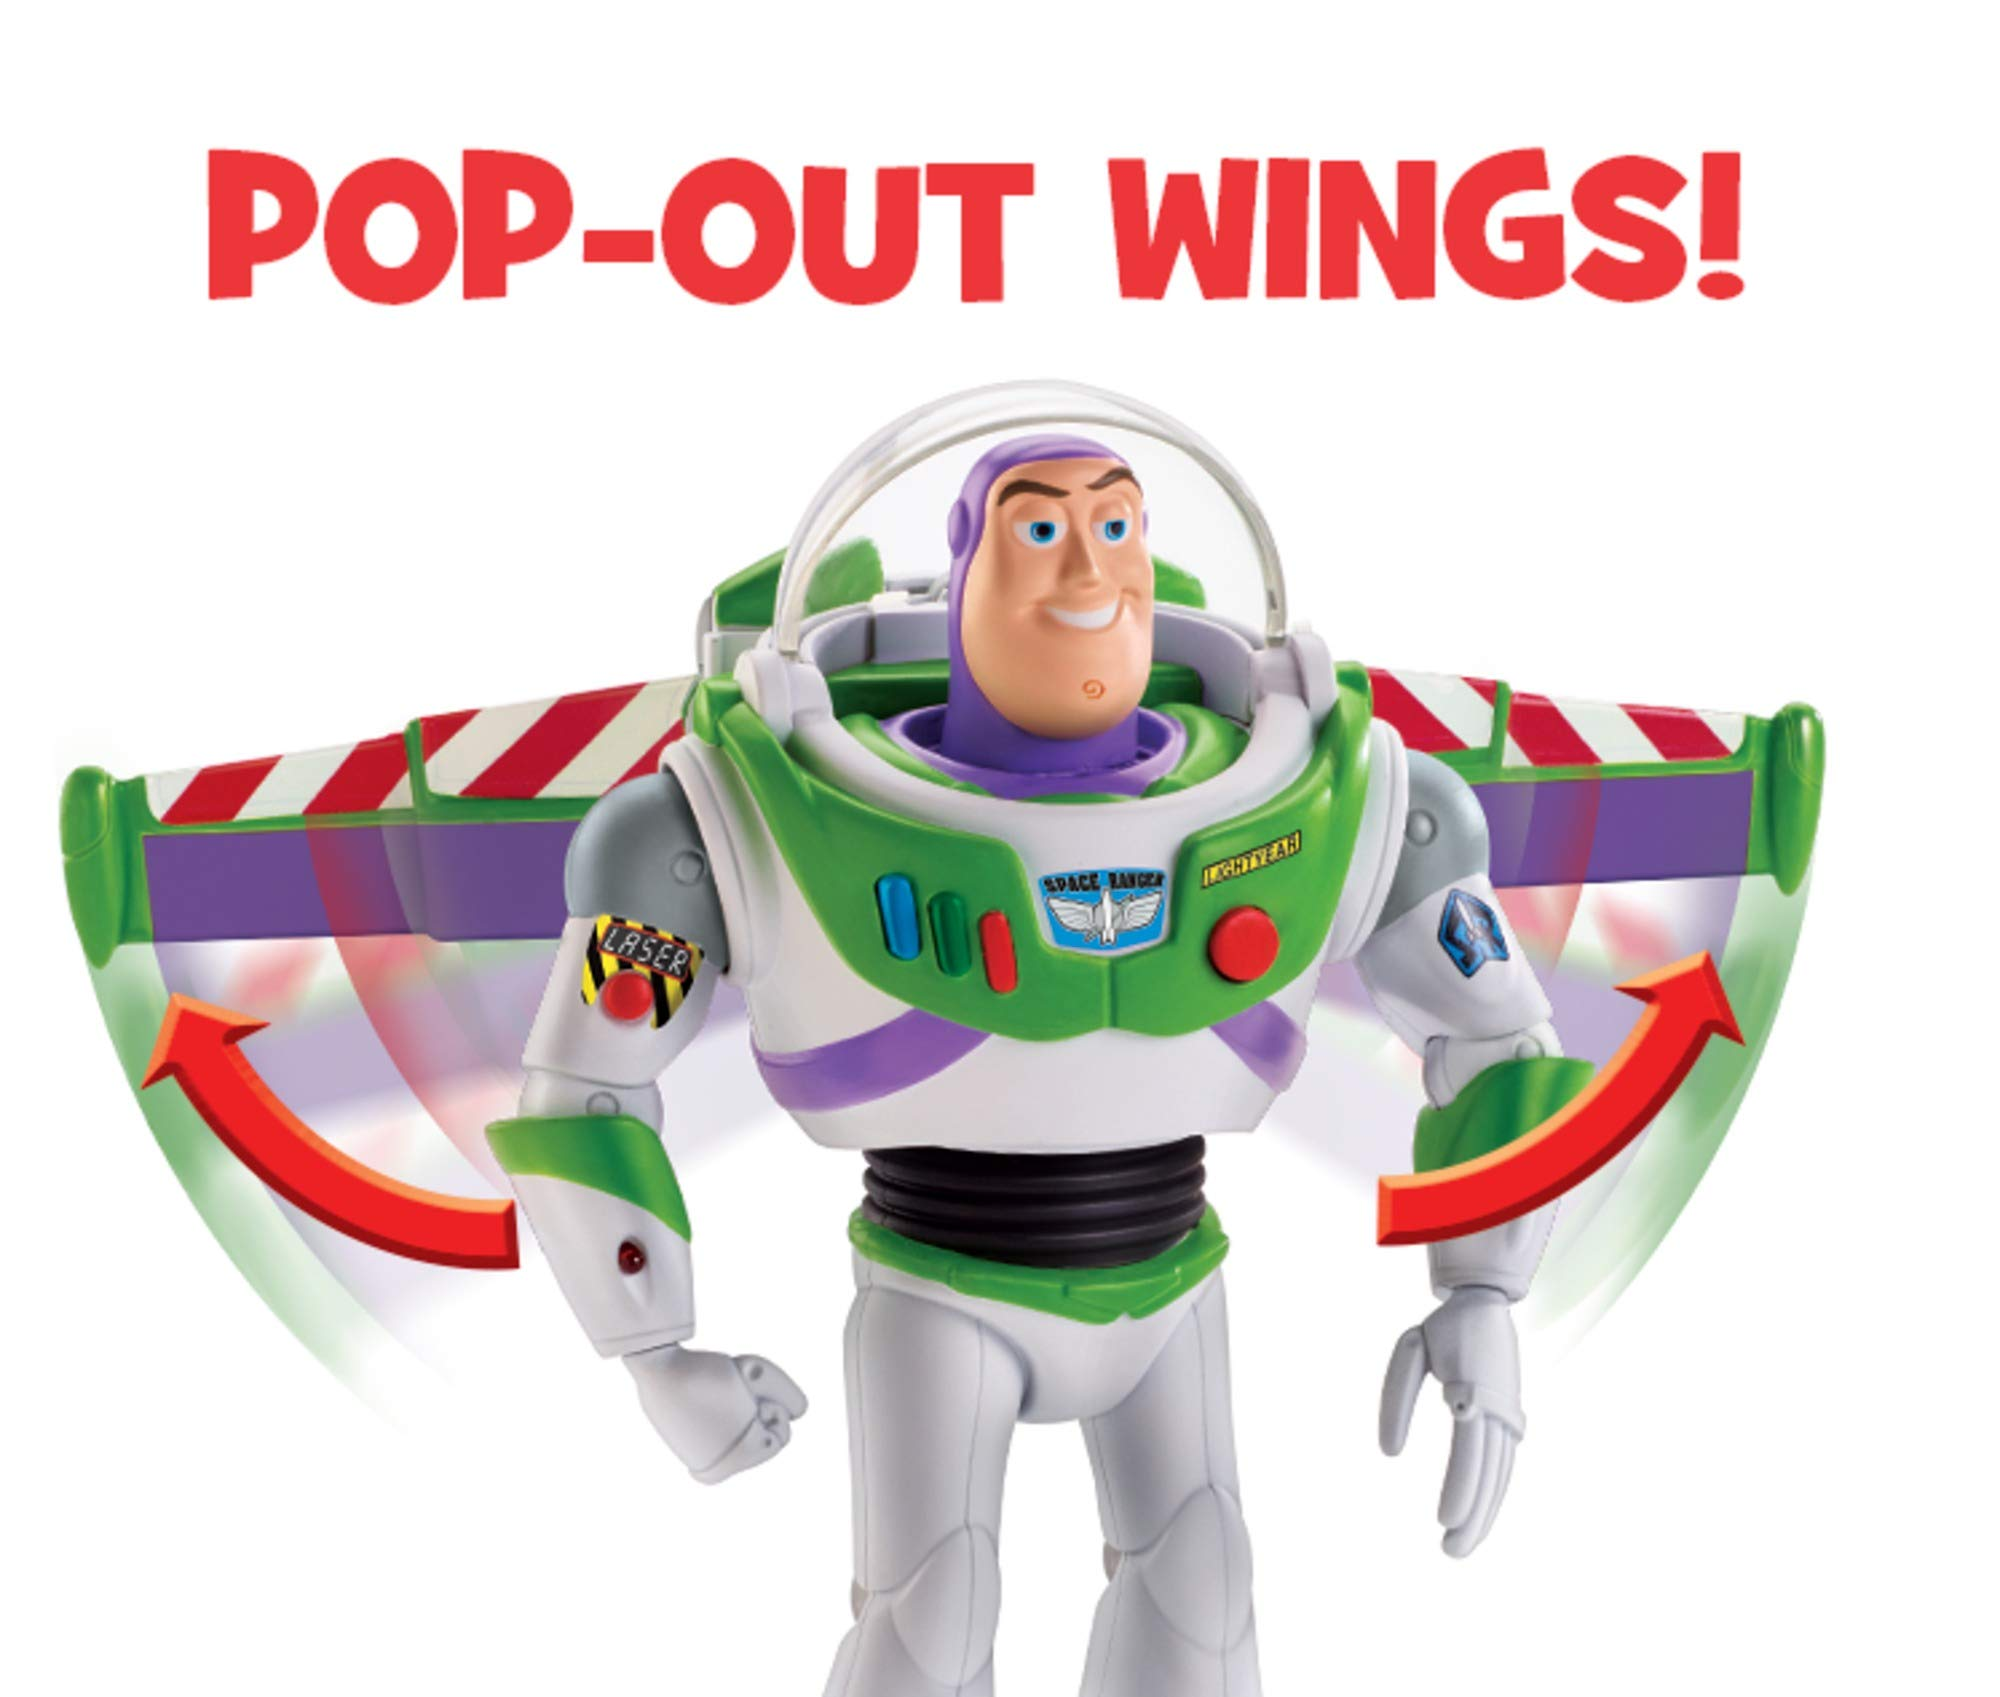 Disney Pixar Toy Story Ultimate Walking Buzz Lightyear, 7'' by Toy Story (Image #3)